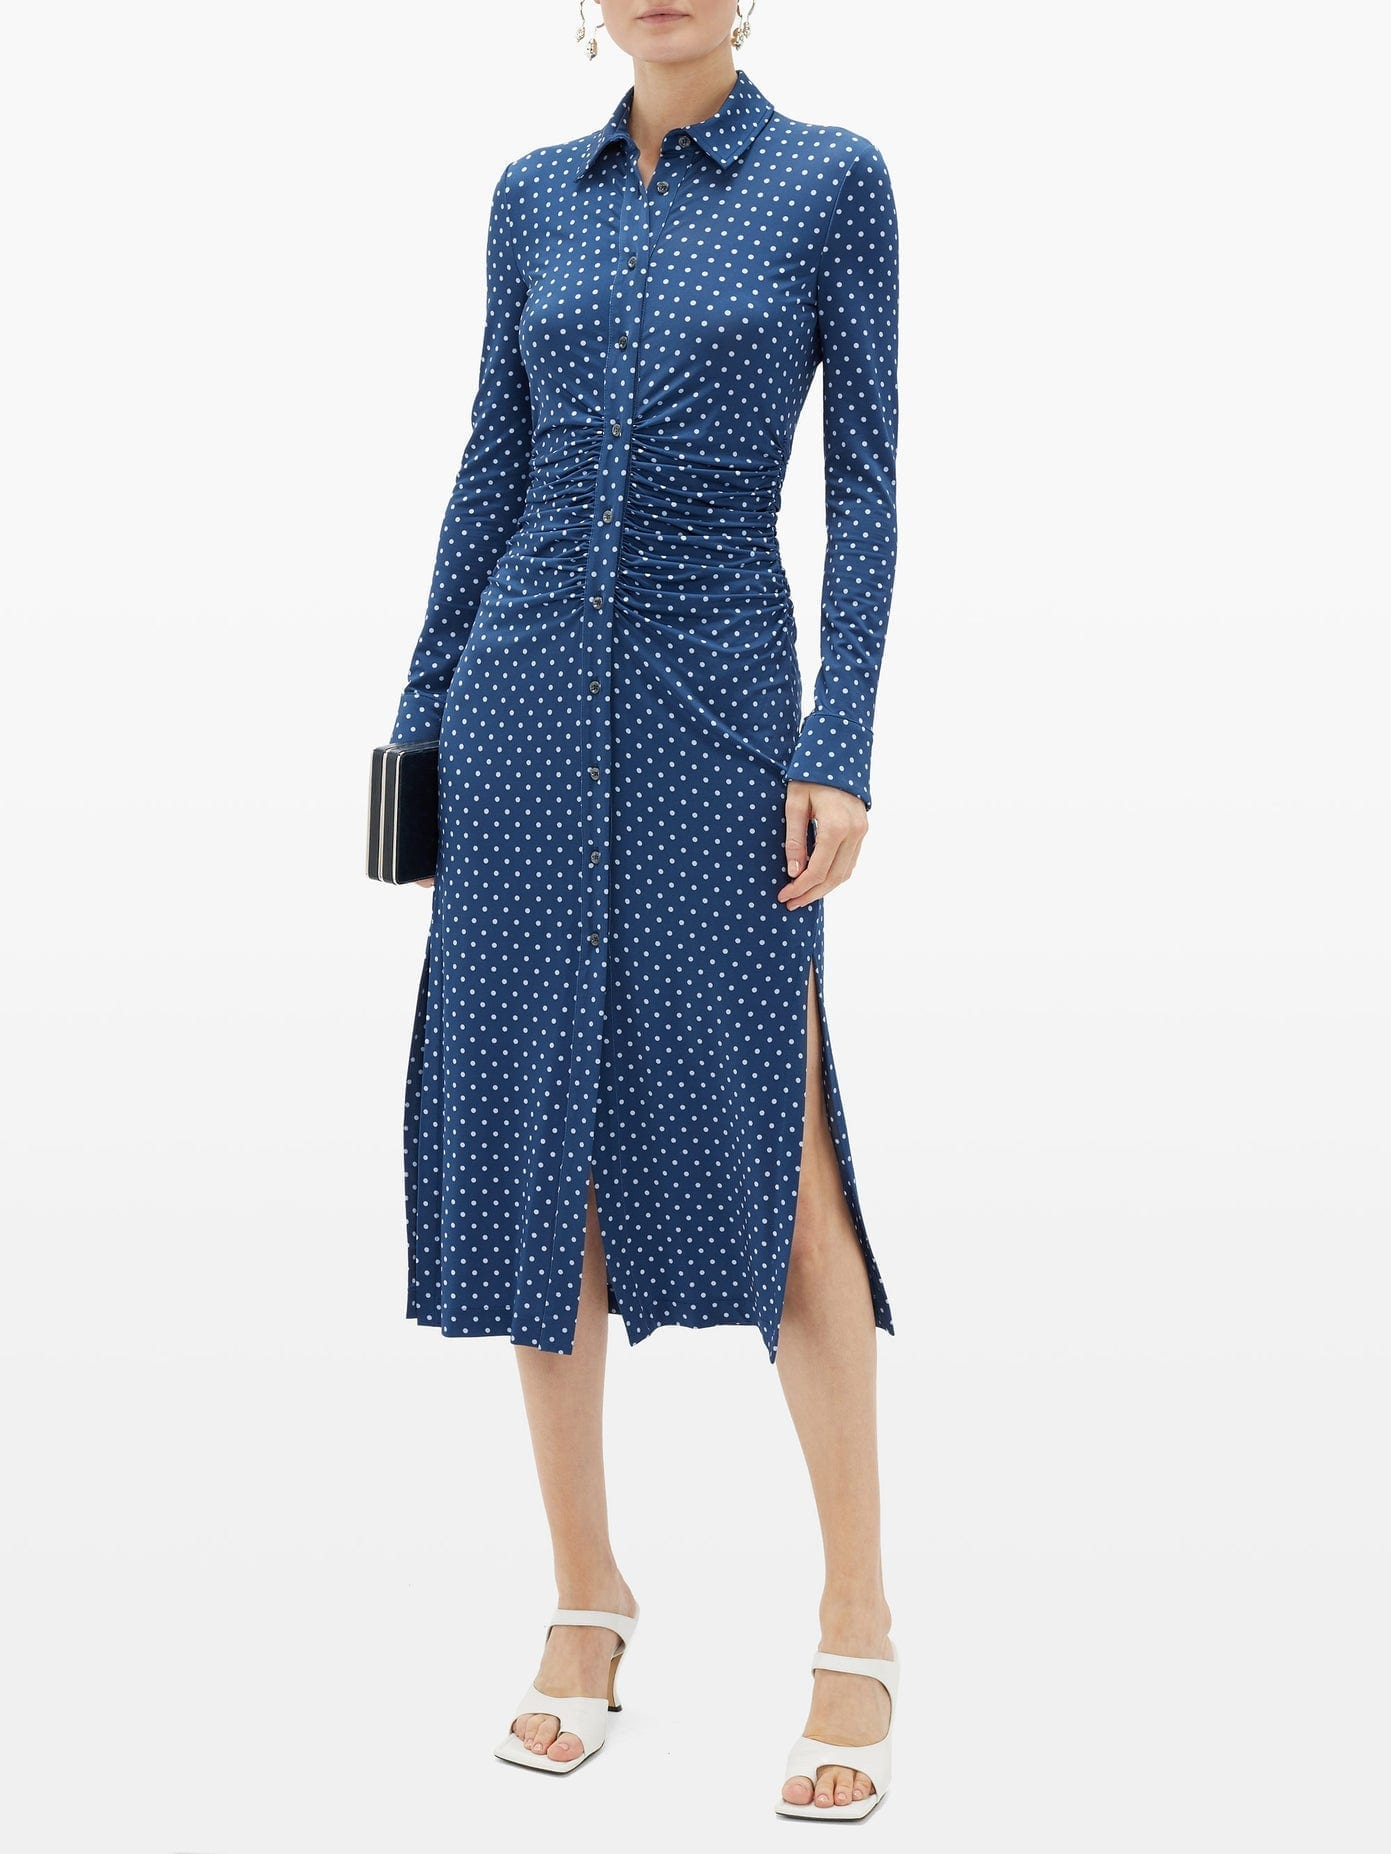 ALTUZARRA Polka-Dot Ruched-Waist Shirt Dress